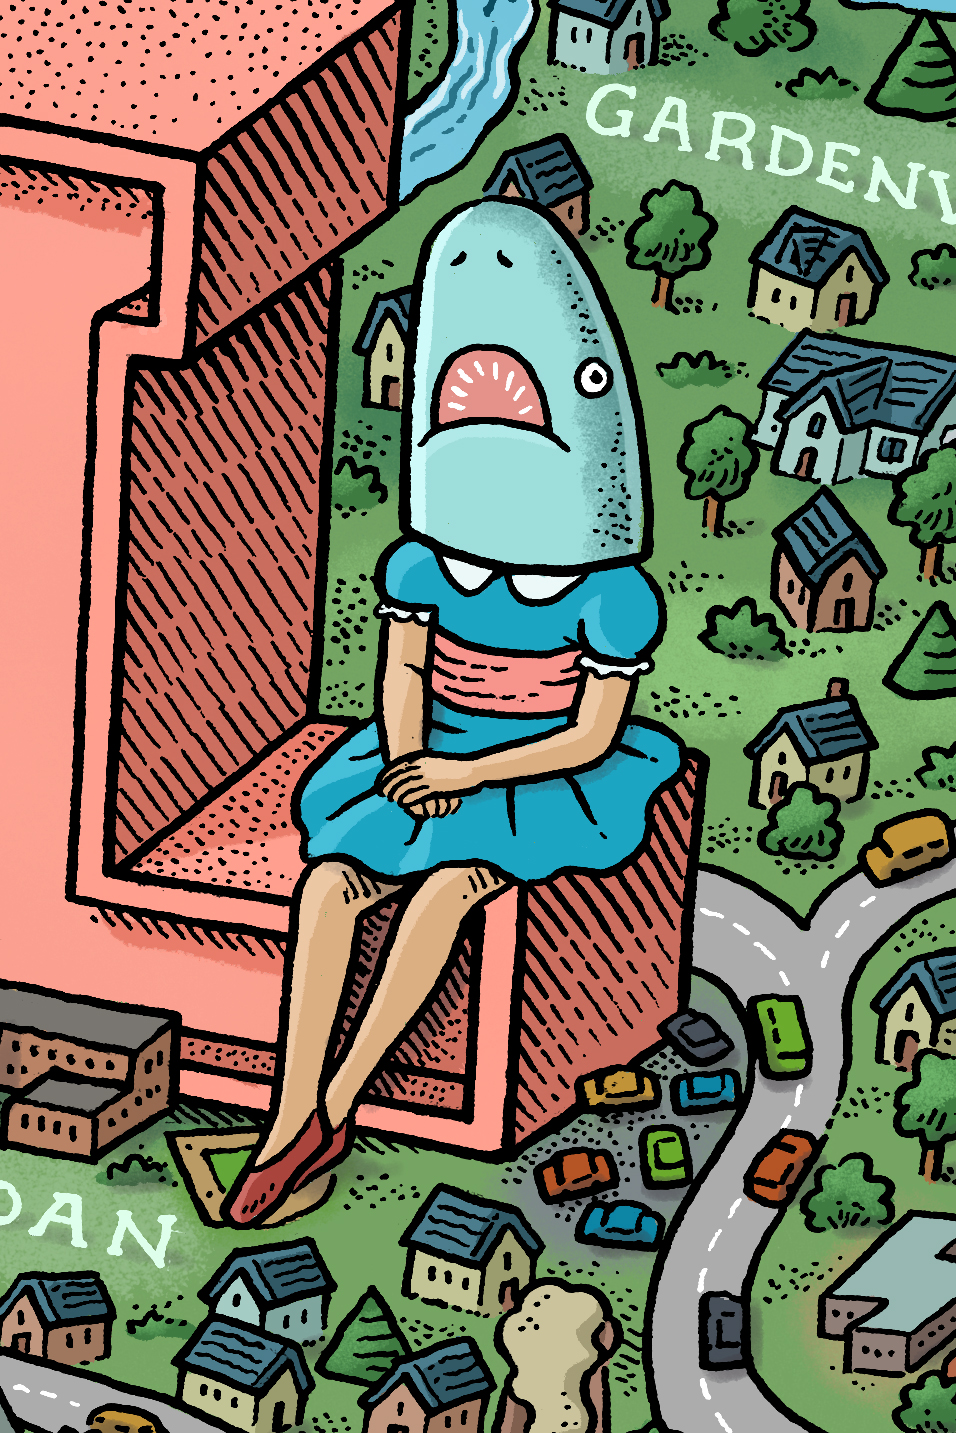 """Casey Riordan Millard's buzzworthy """"Shark Girl"""" sculpture features prominently in Mario Zucca's playful map of the City of Buffalo."""